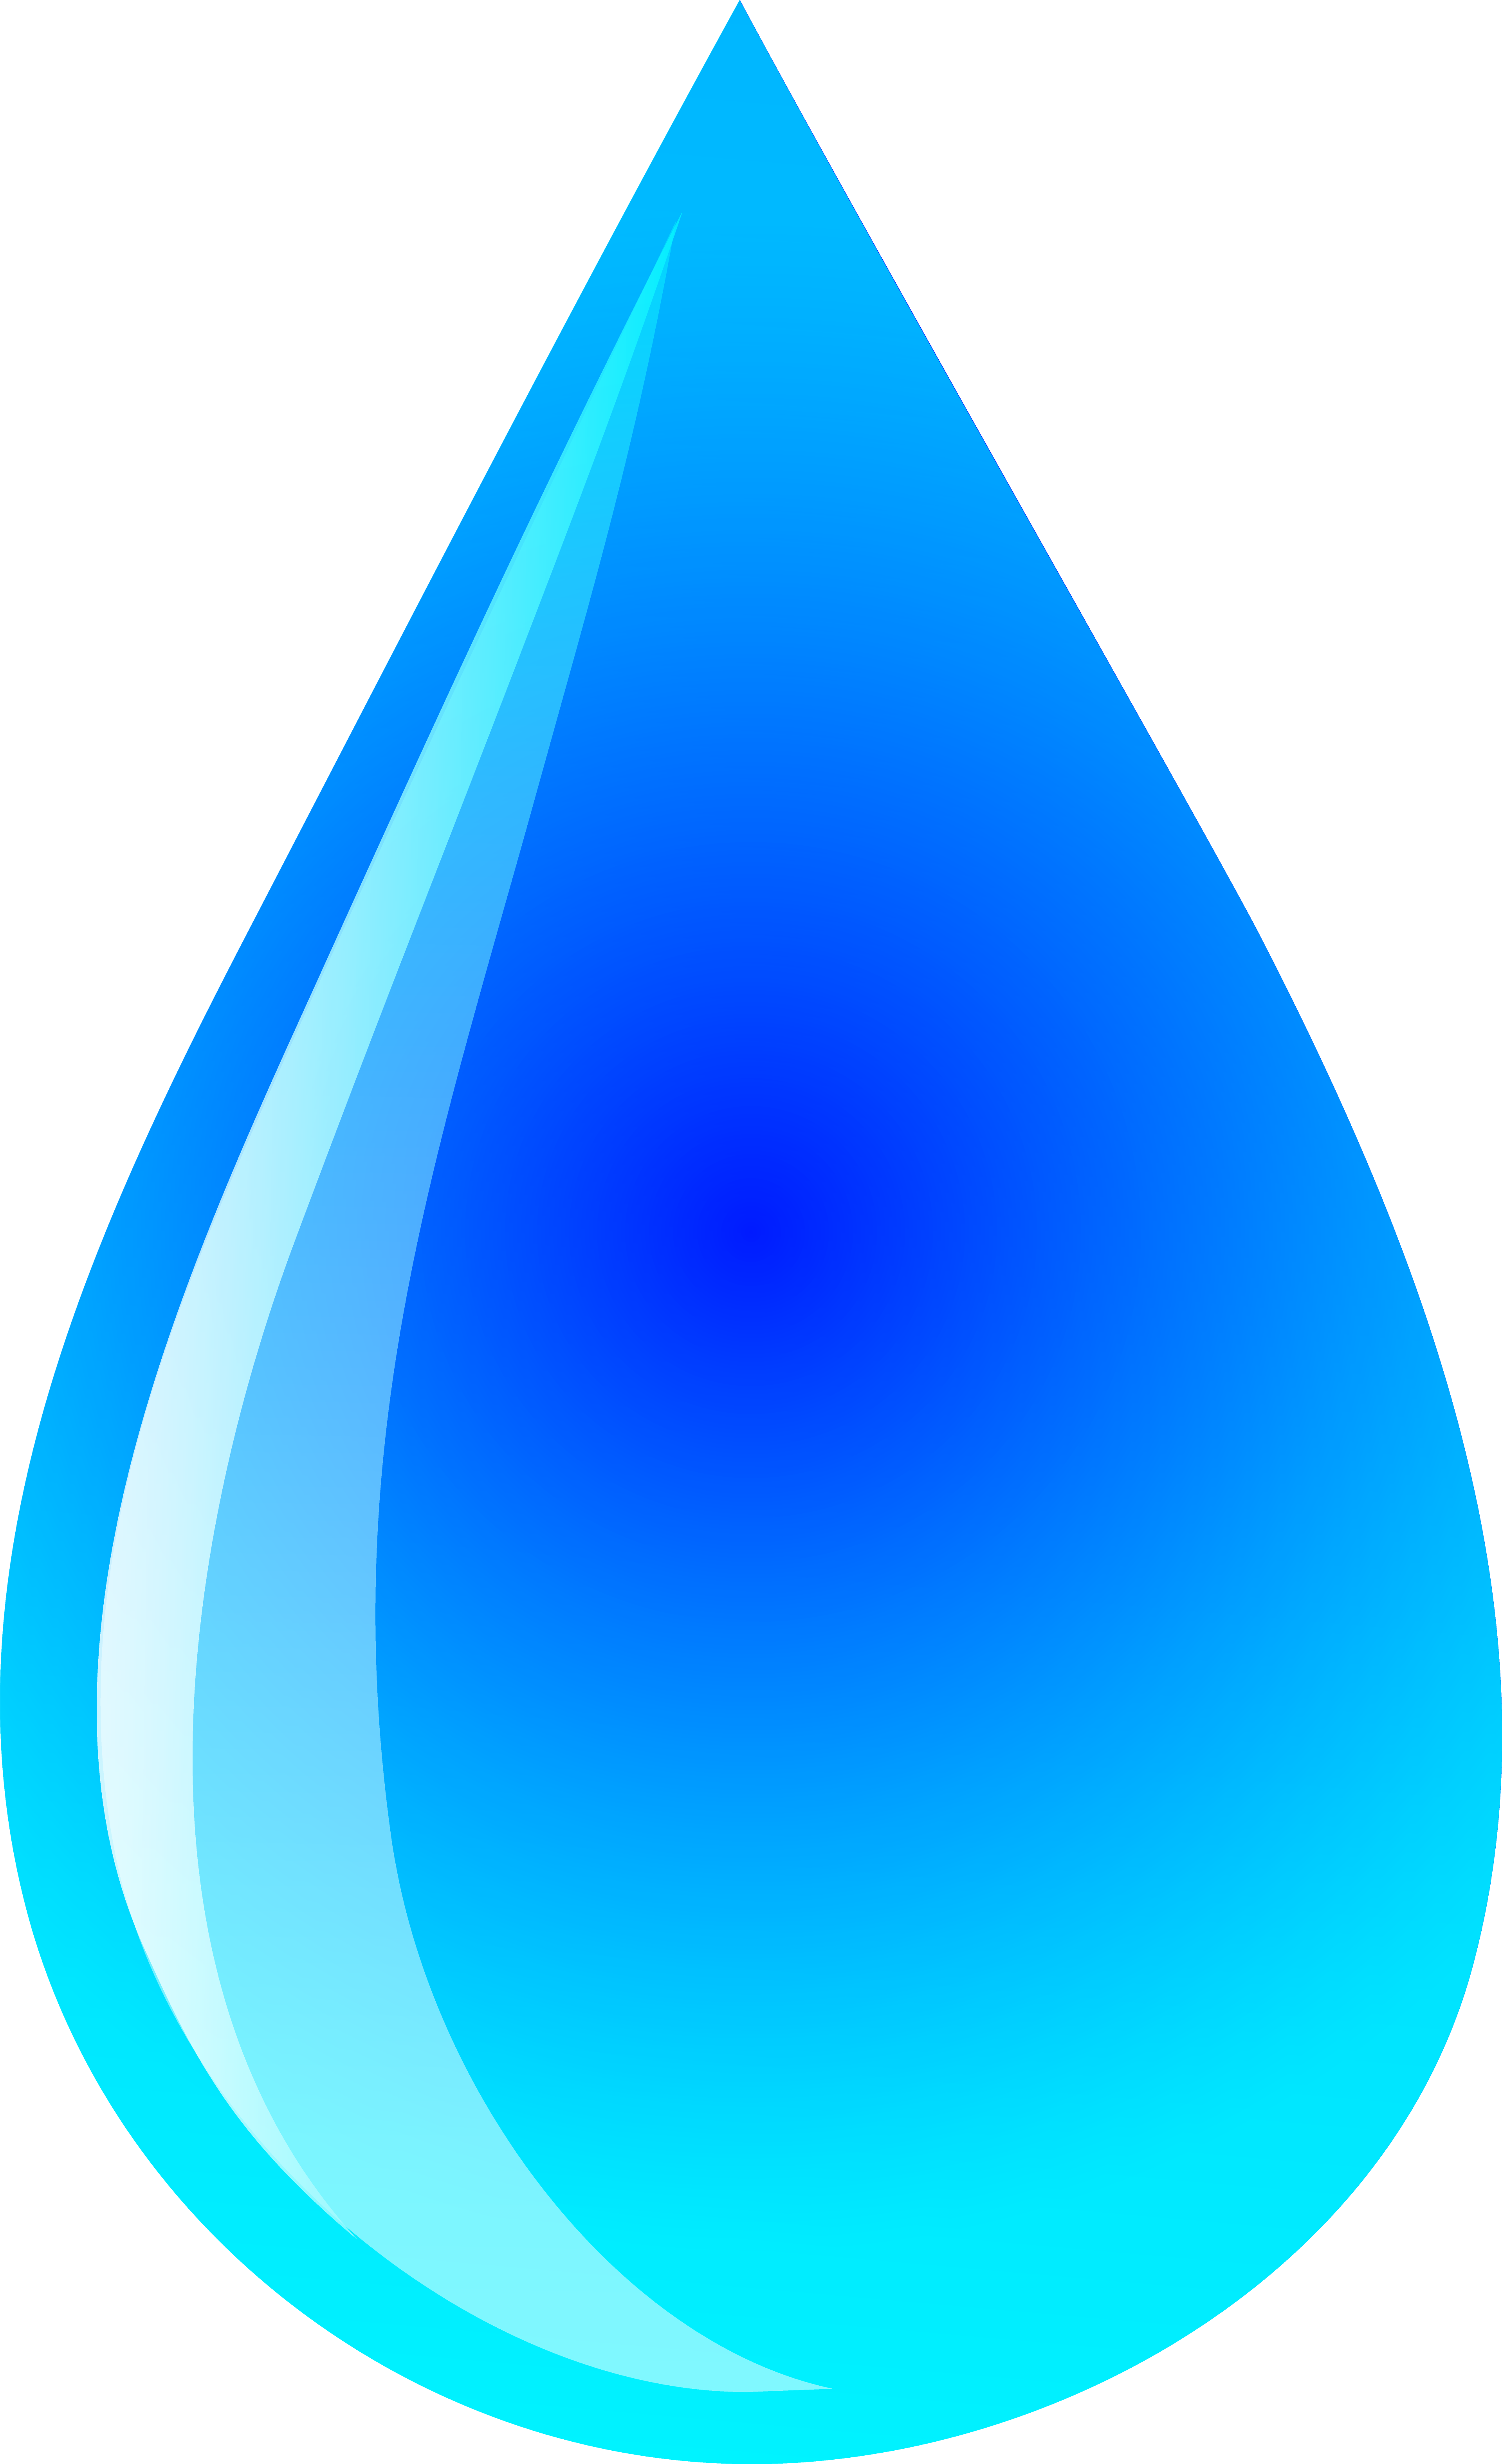 Best Water Clipart #19353 - Clipartion.com